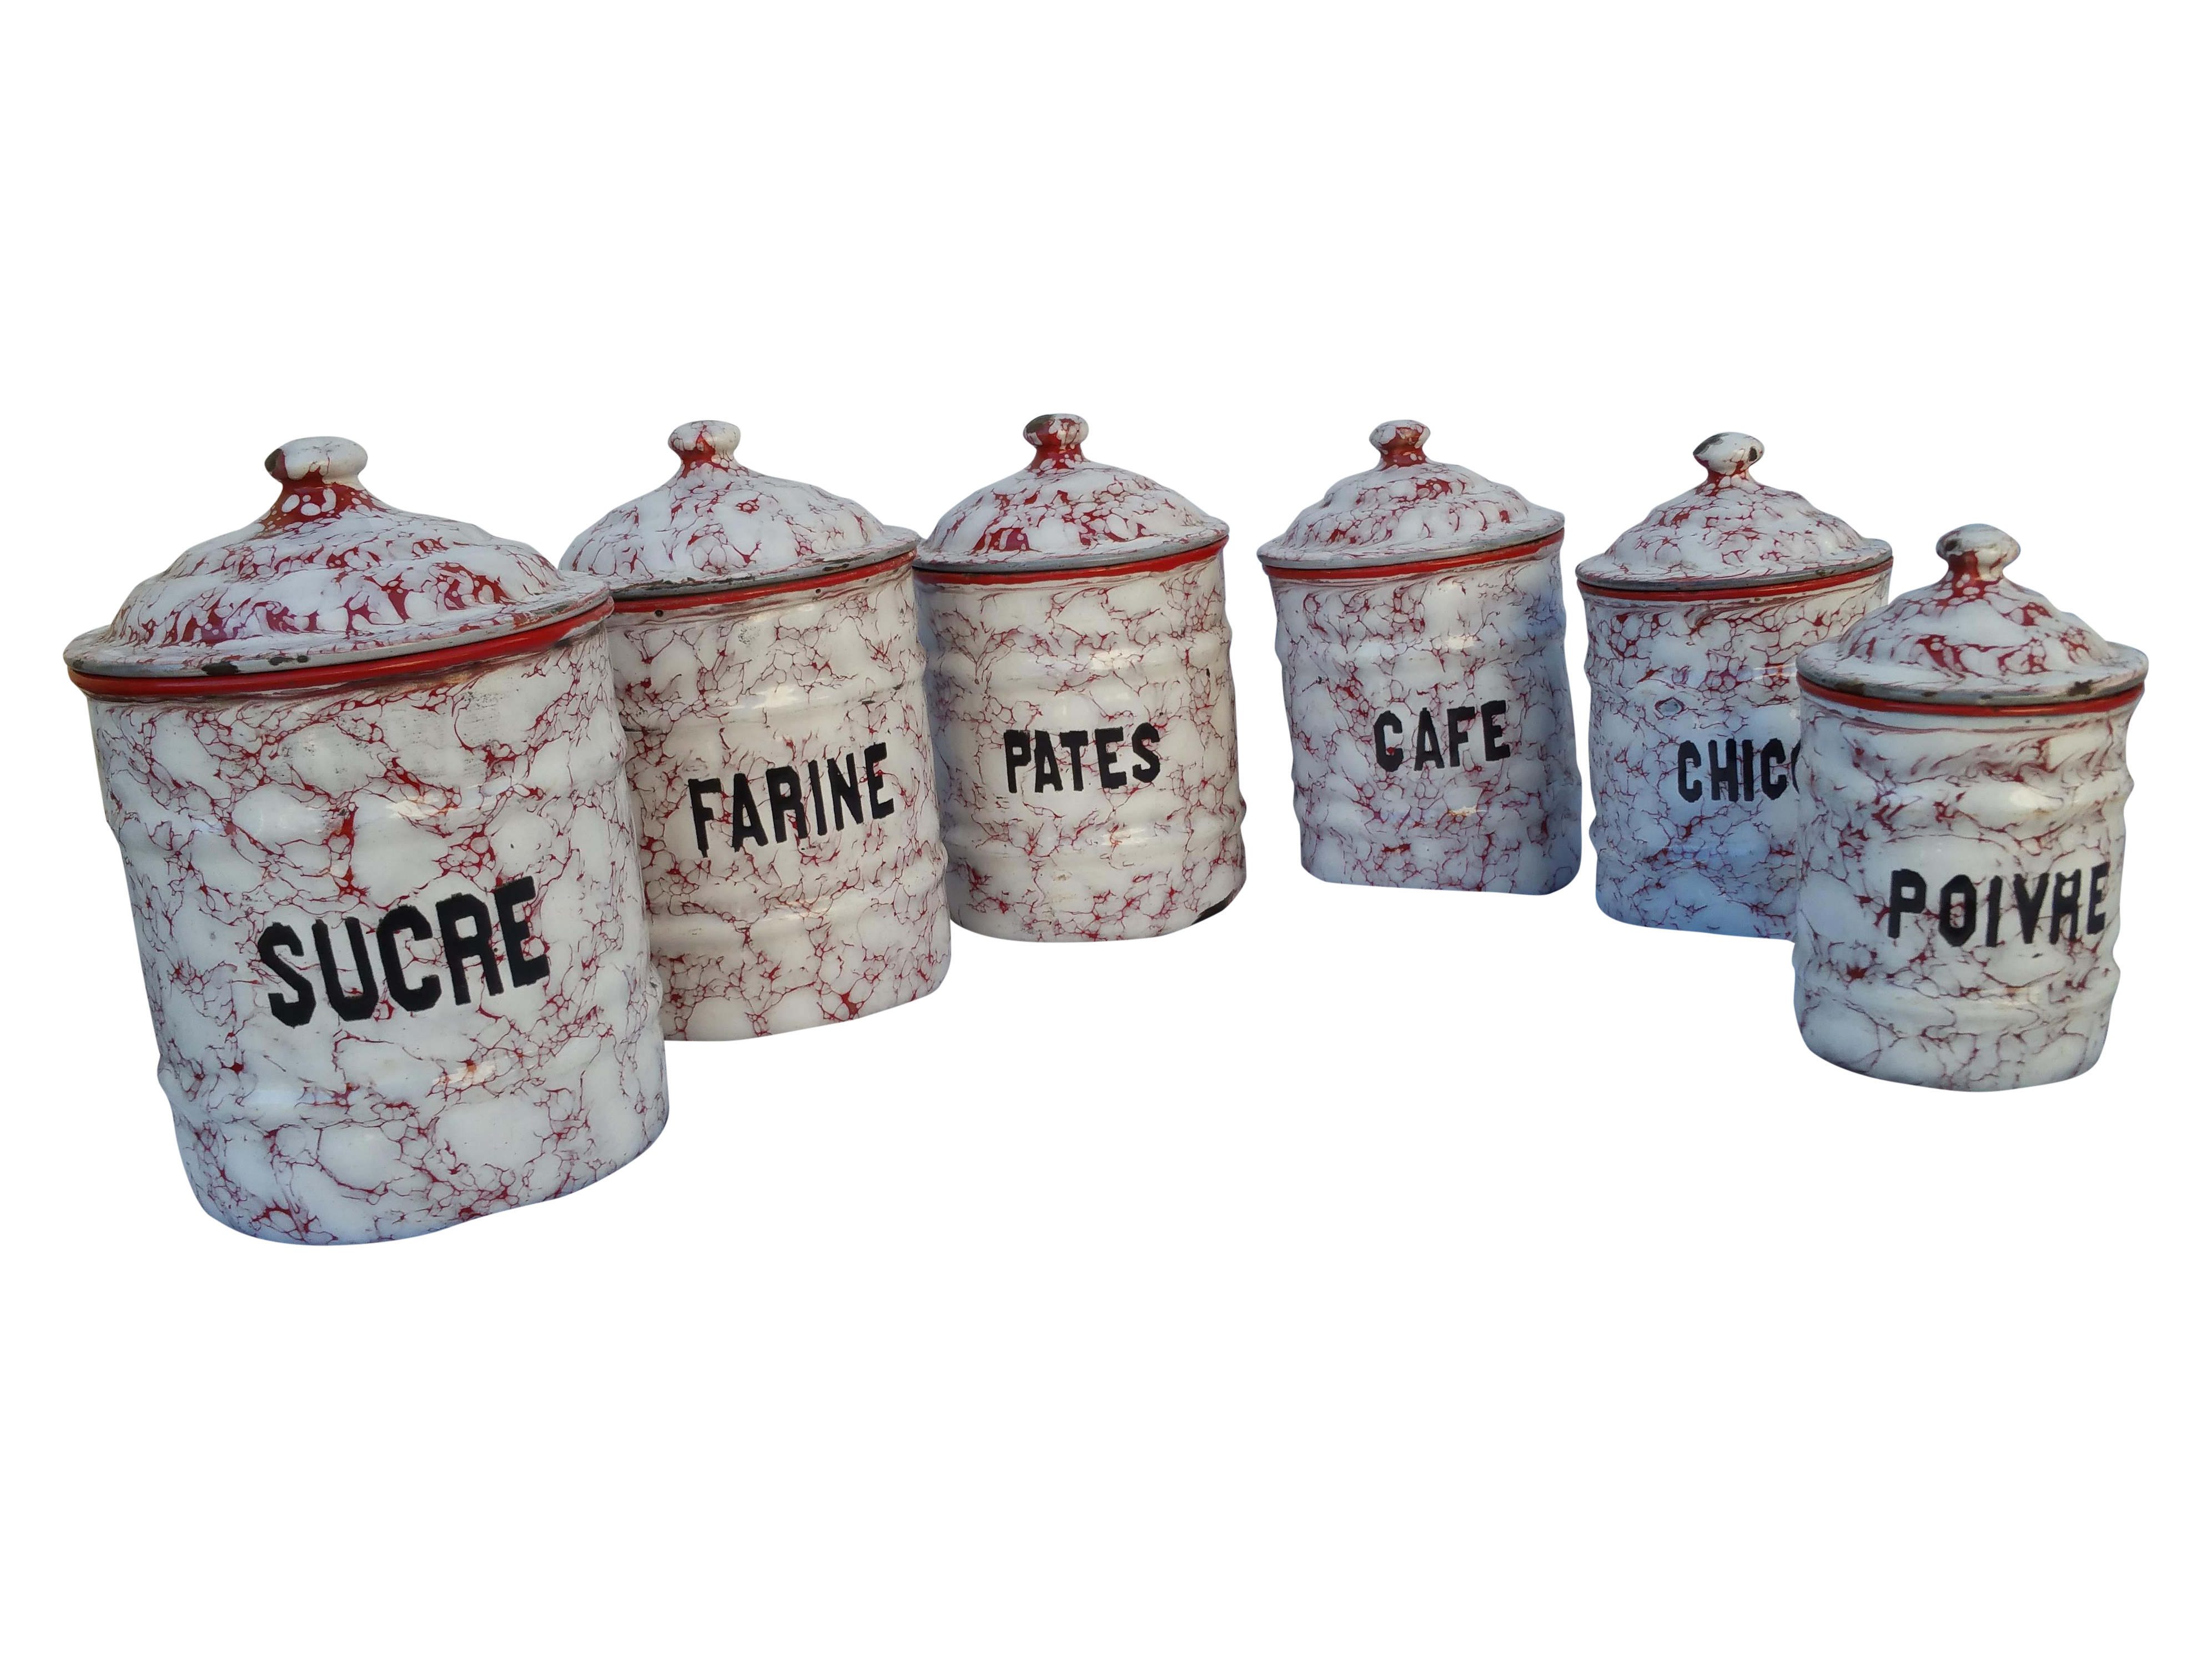 french red amp white kitchen canister set chairish french vintage aluminum canister set french kitchen